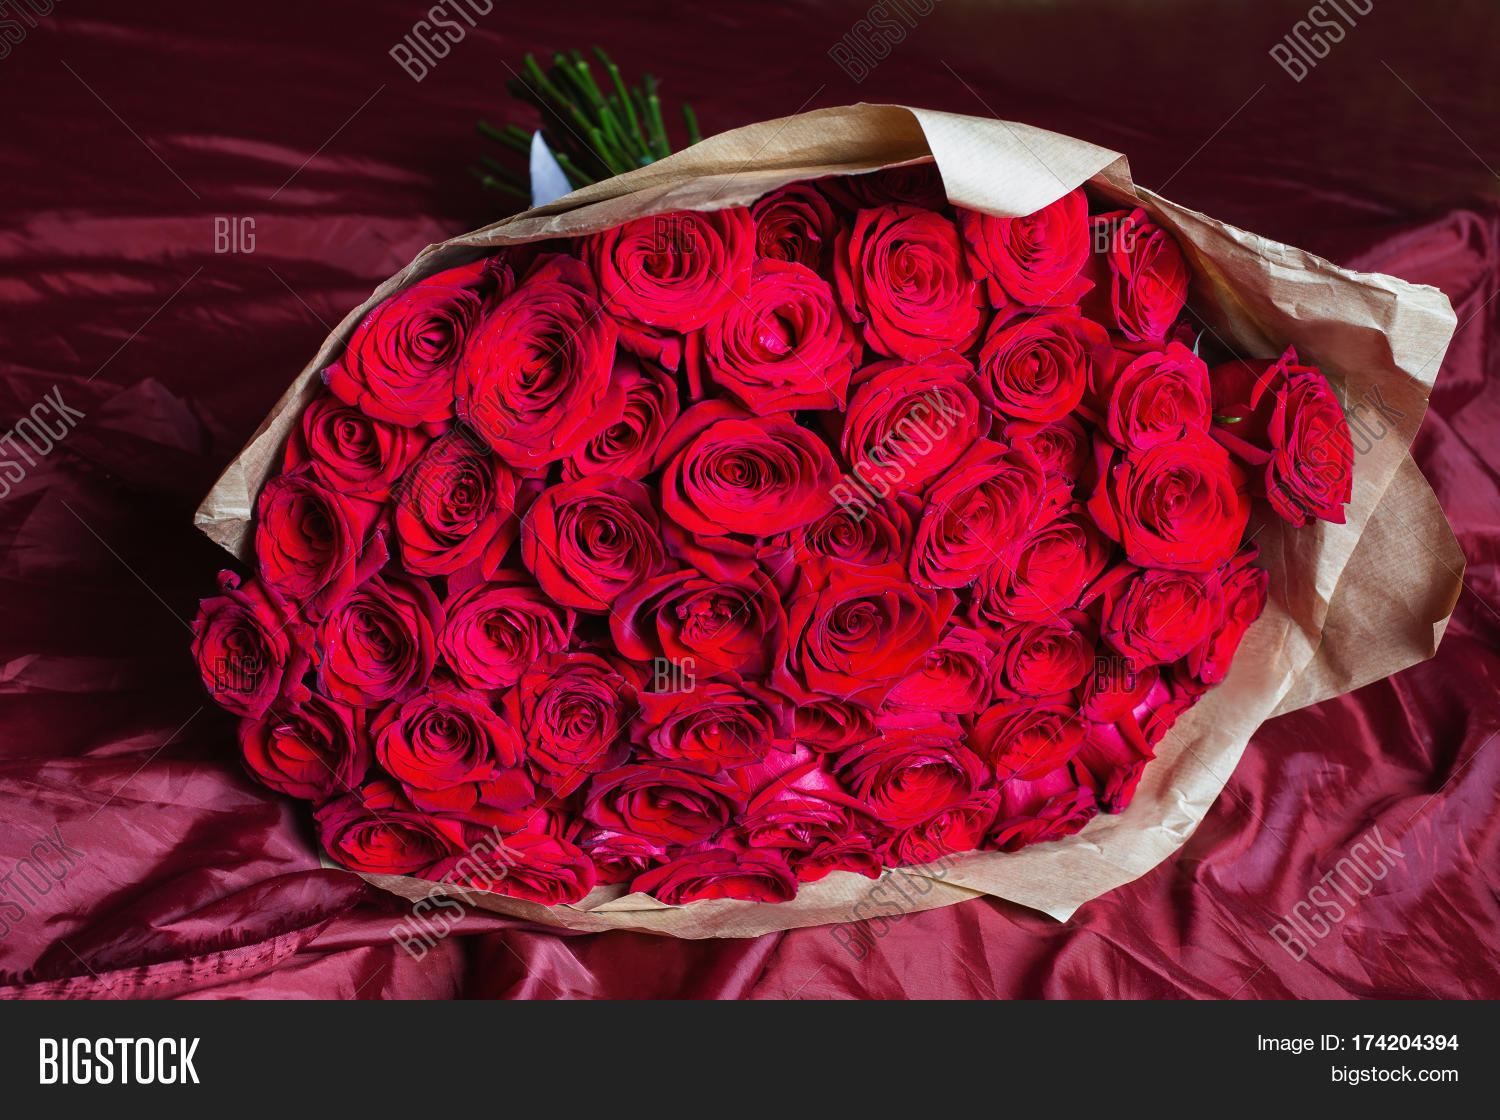 Big bouquet red roses image photo free trial bigstock big bouquet of red roses texture colors a bouquet gift for a wedding birthday izmirmasajfo